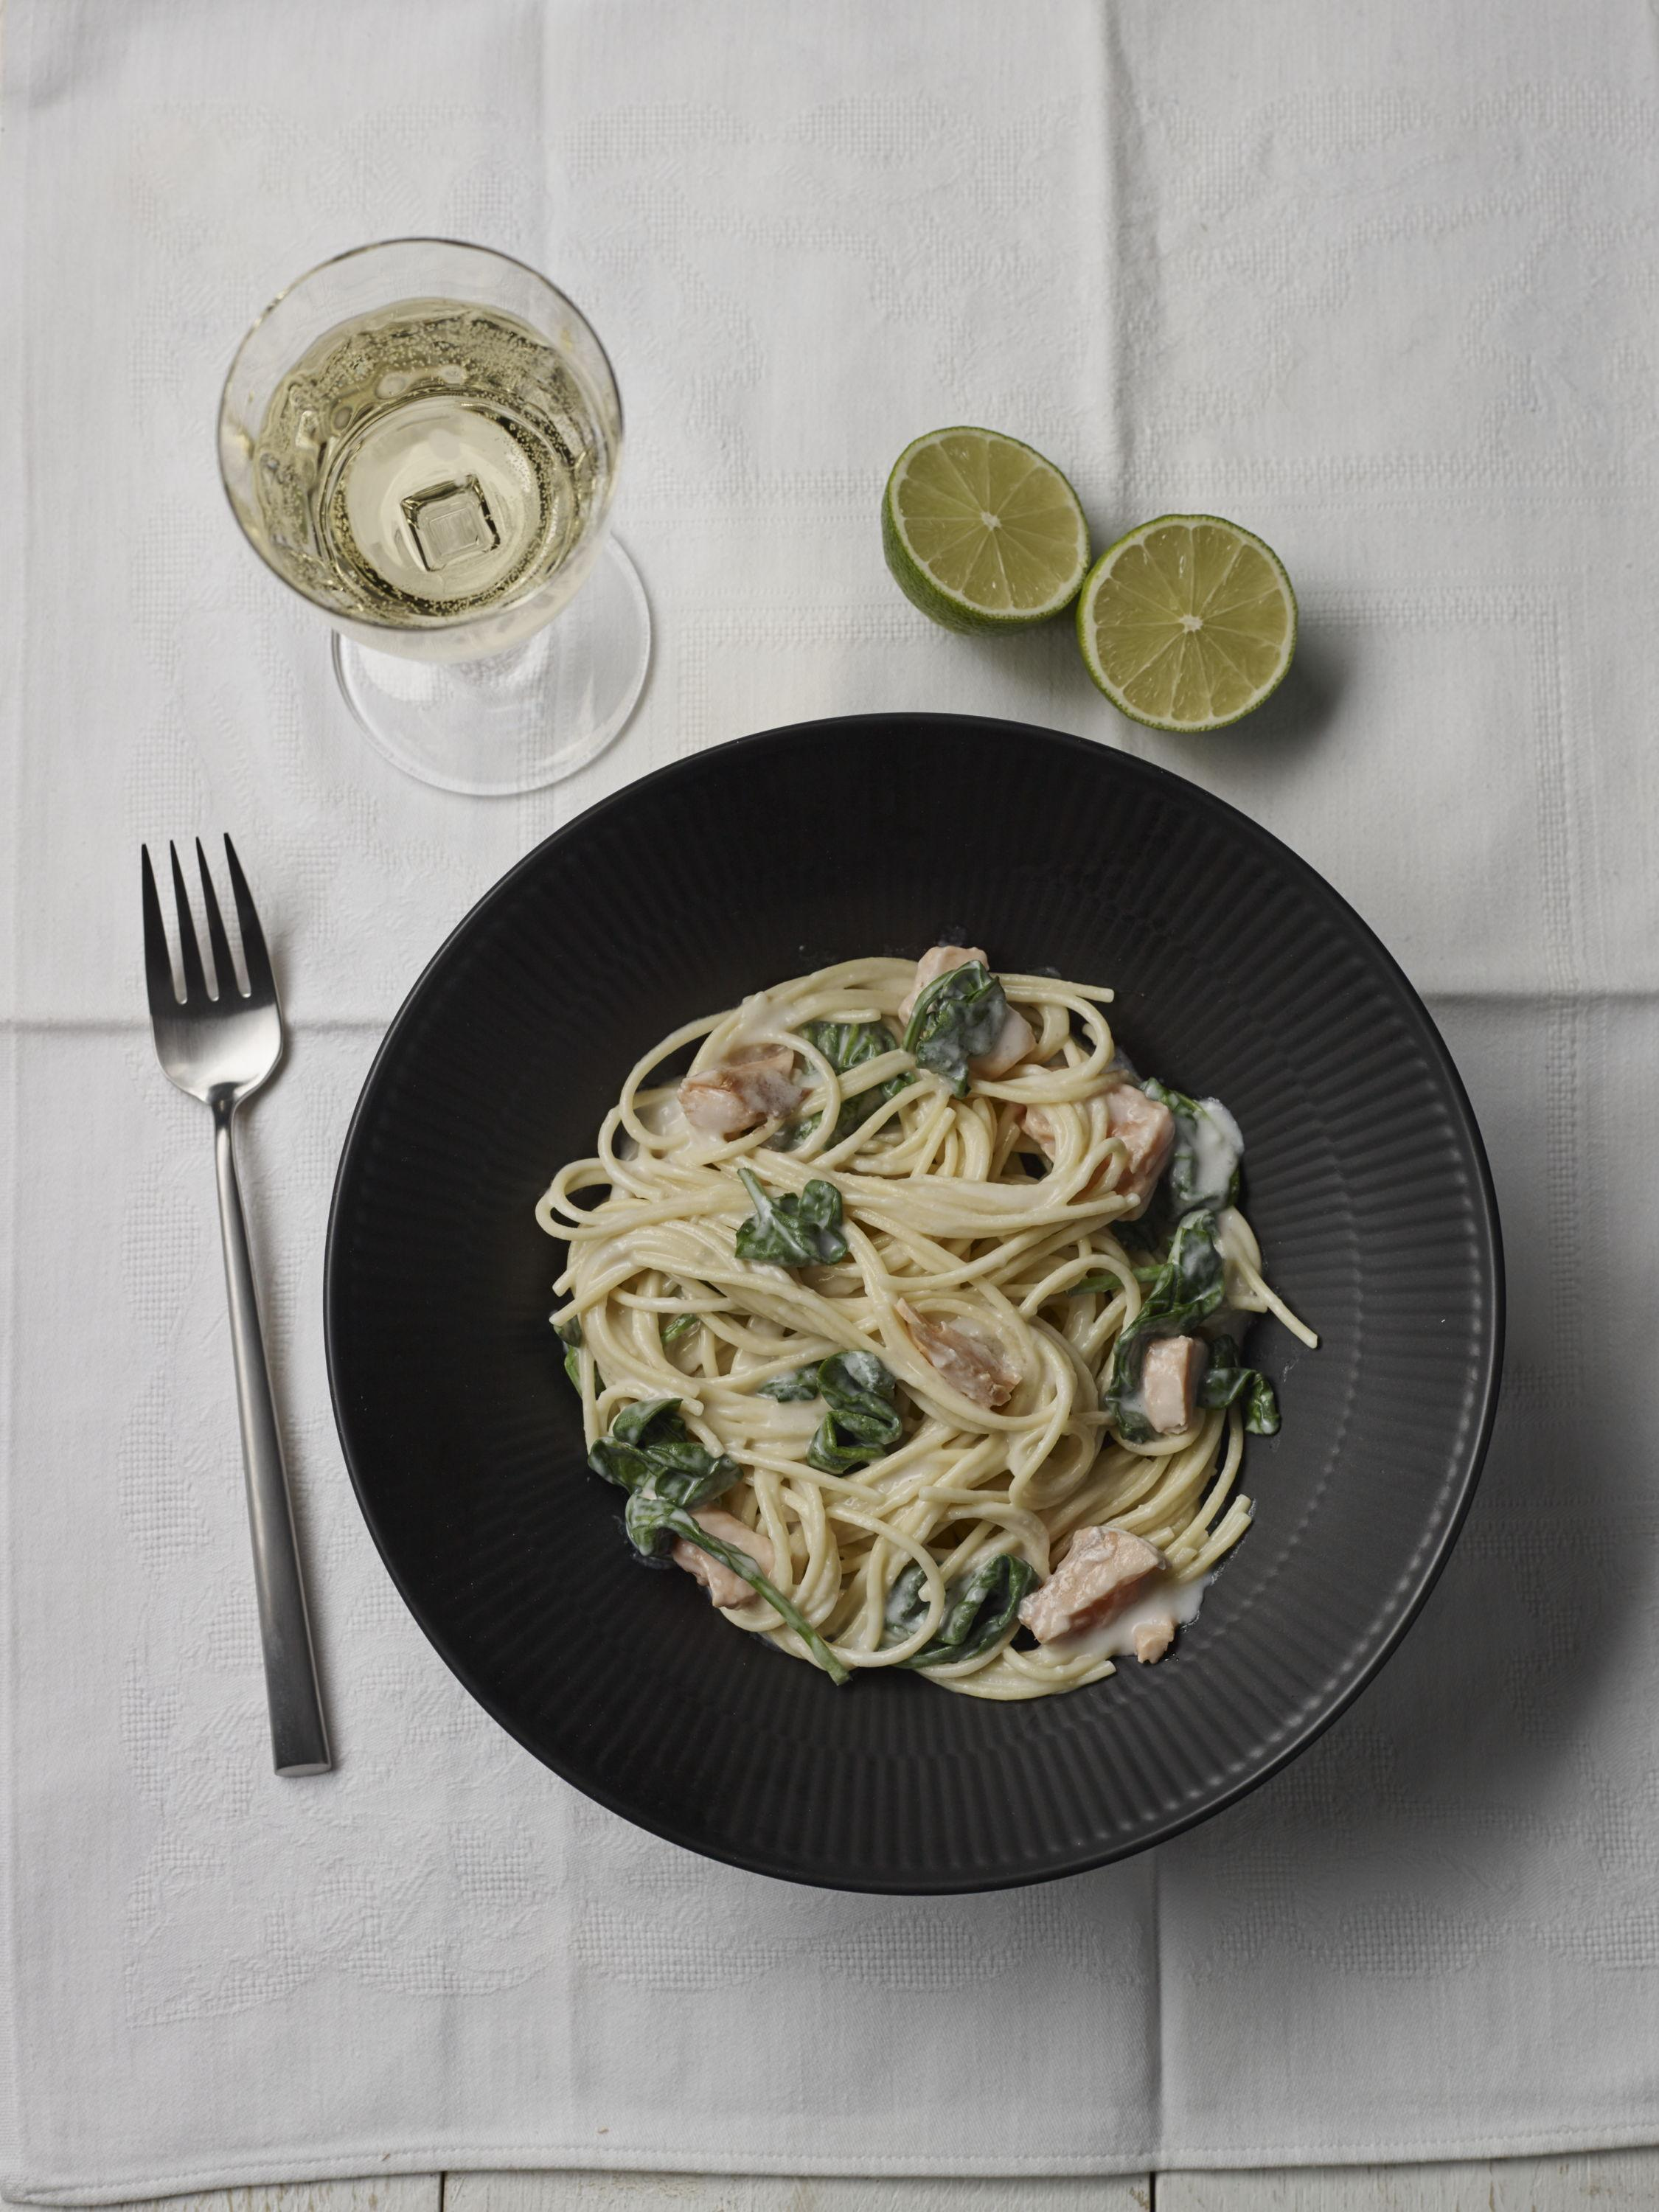 Spaghetti with coconut and spinach sauce from the 10 | 10 retailer edition